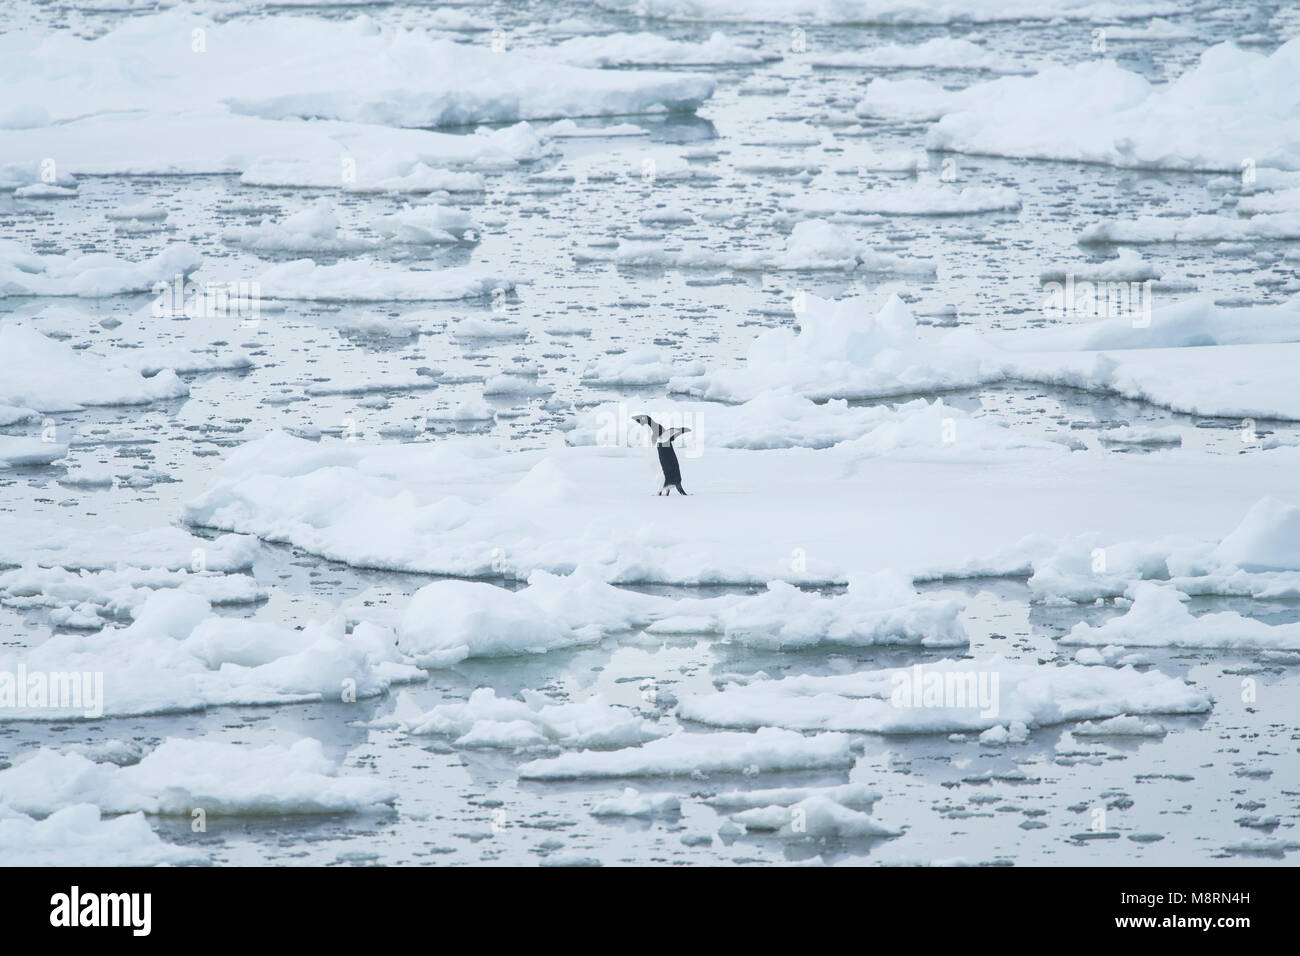 One lone Adelie penguin stands on top of pack ice in the French Passage off the coast of the Antarctic Peninsula. - Stock Image